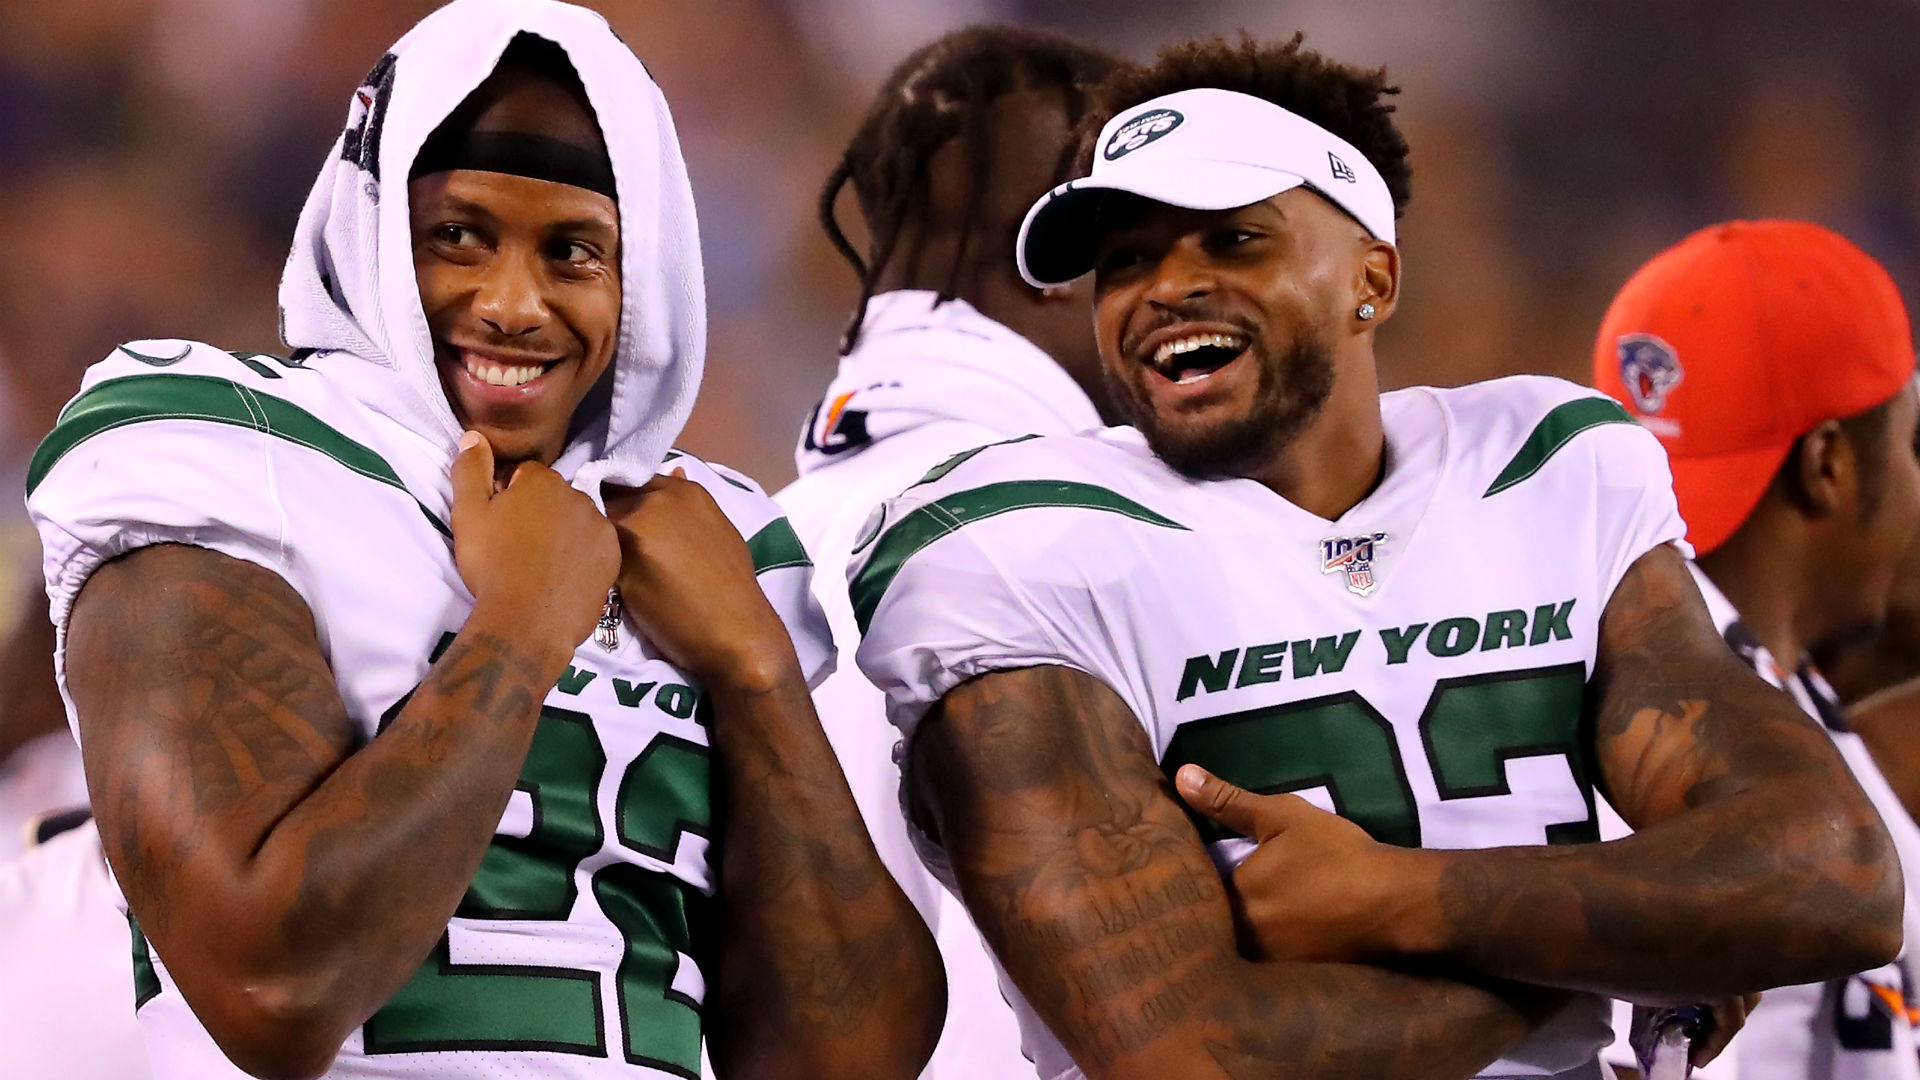 'Culture beats strategy': How the Jets are rebranding their defense with attitude